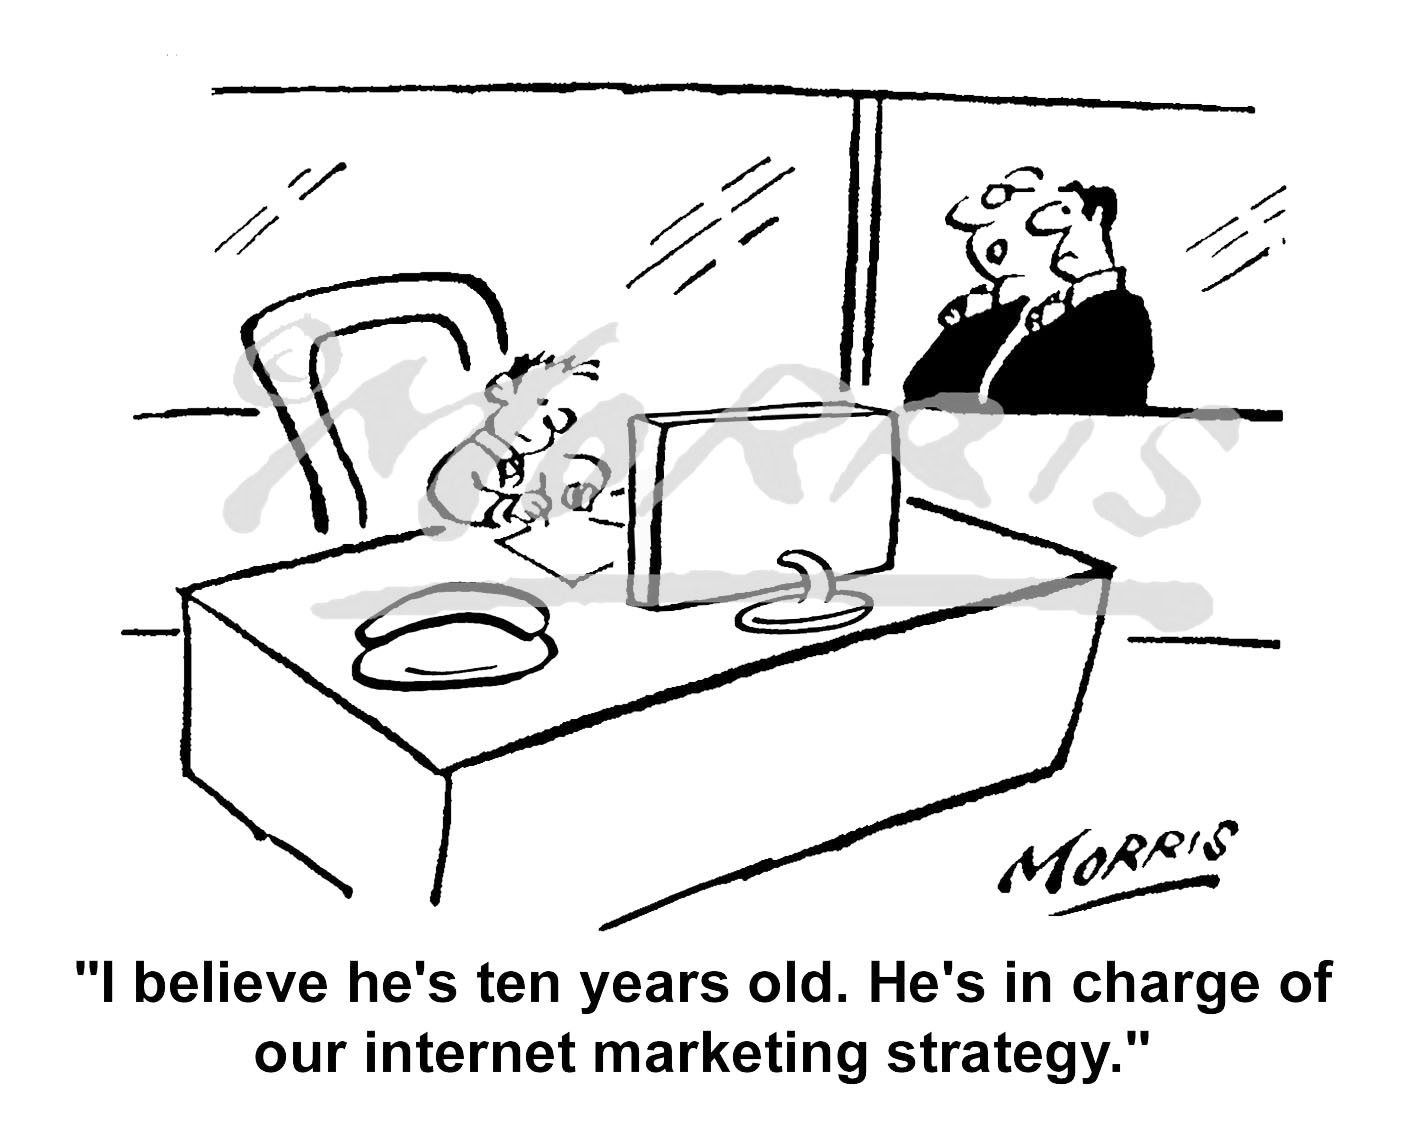 Internet Marketing Strategy cartoon – Ref: 5301bw